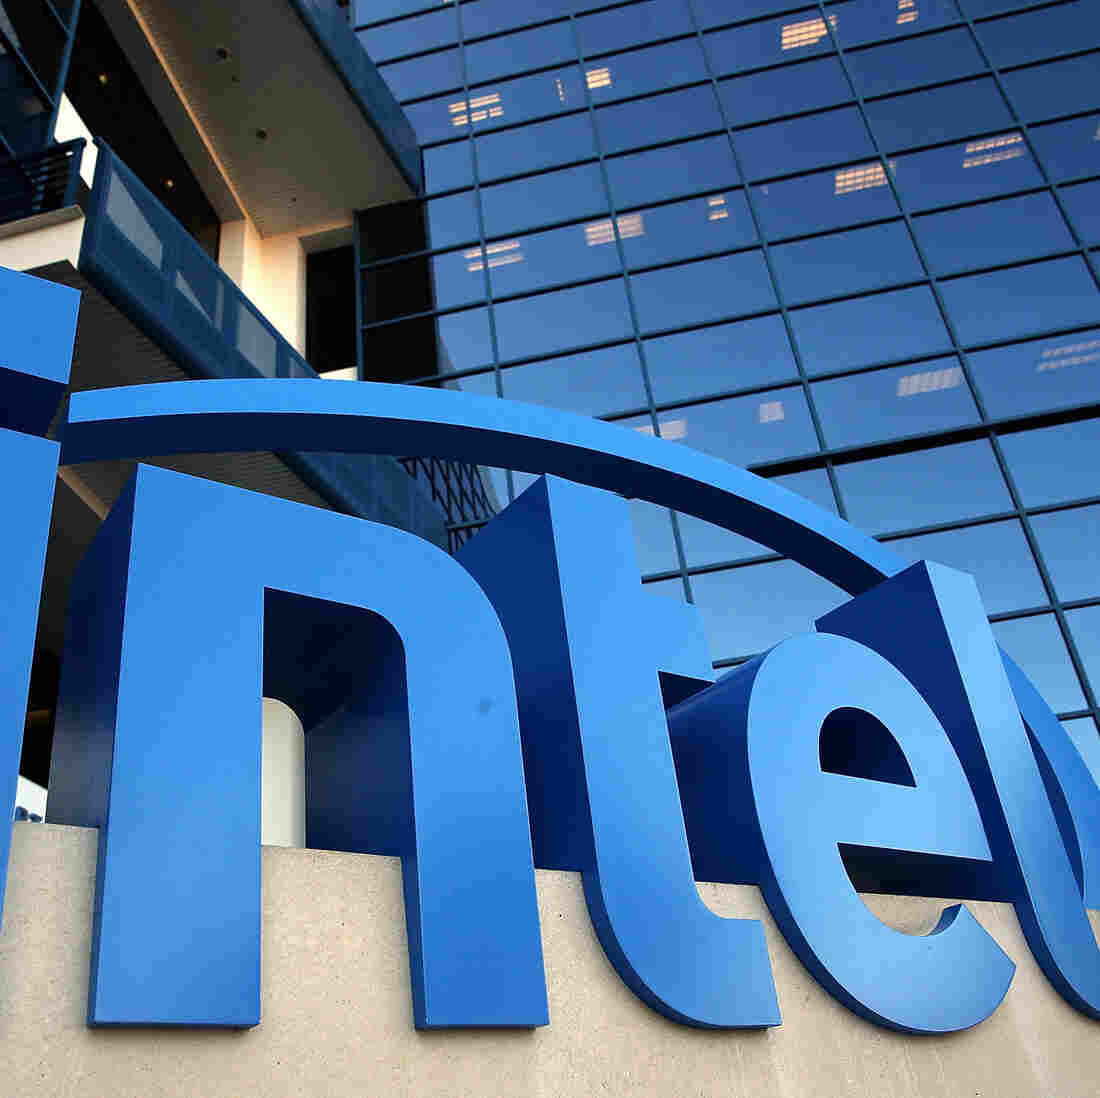 Chip maker Intel recently pulled an advertising campaign from a gaming site amid pressures from supporters of the online #Gamergate movement.